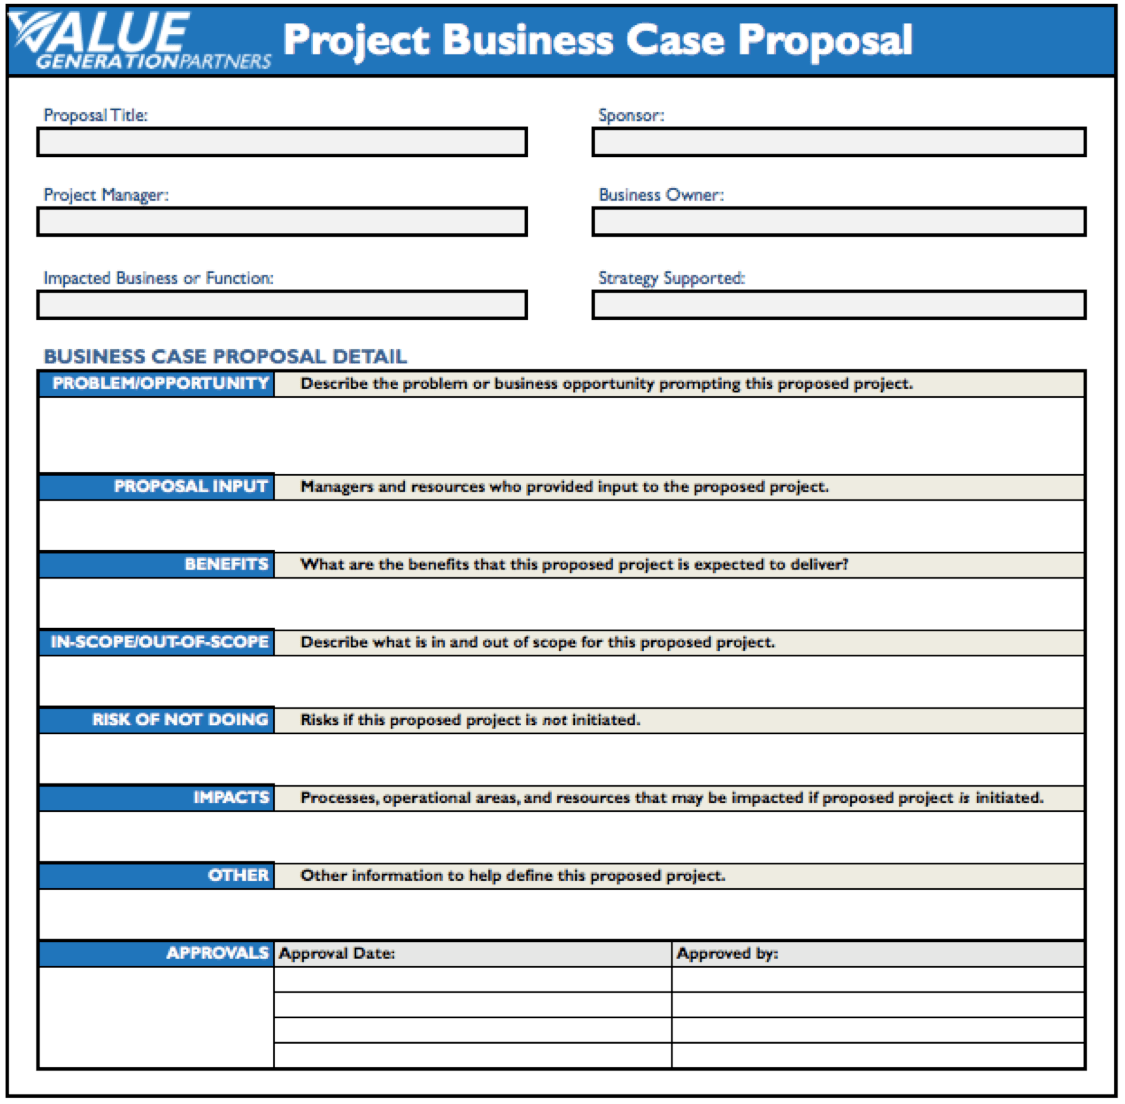 business proposal quotation template sample war business proposal quotation template quote template proposal templates and proposal software template proposal project business case